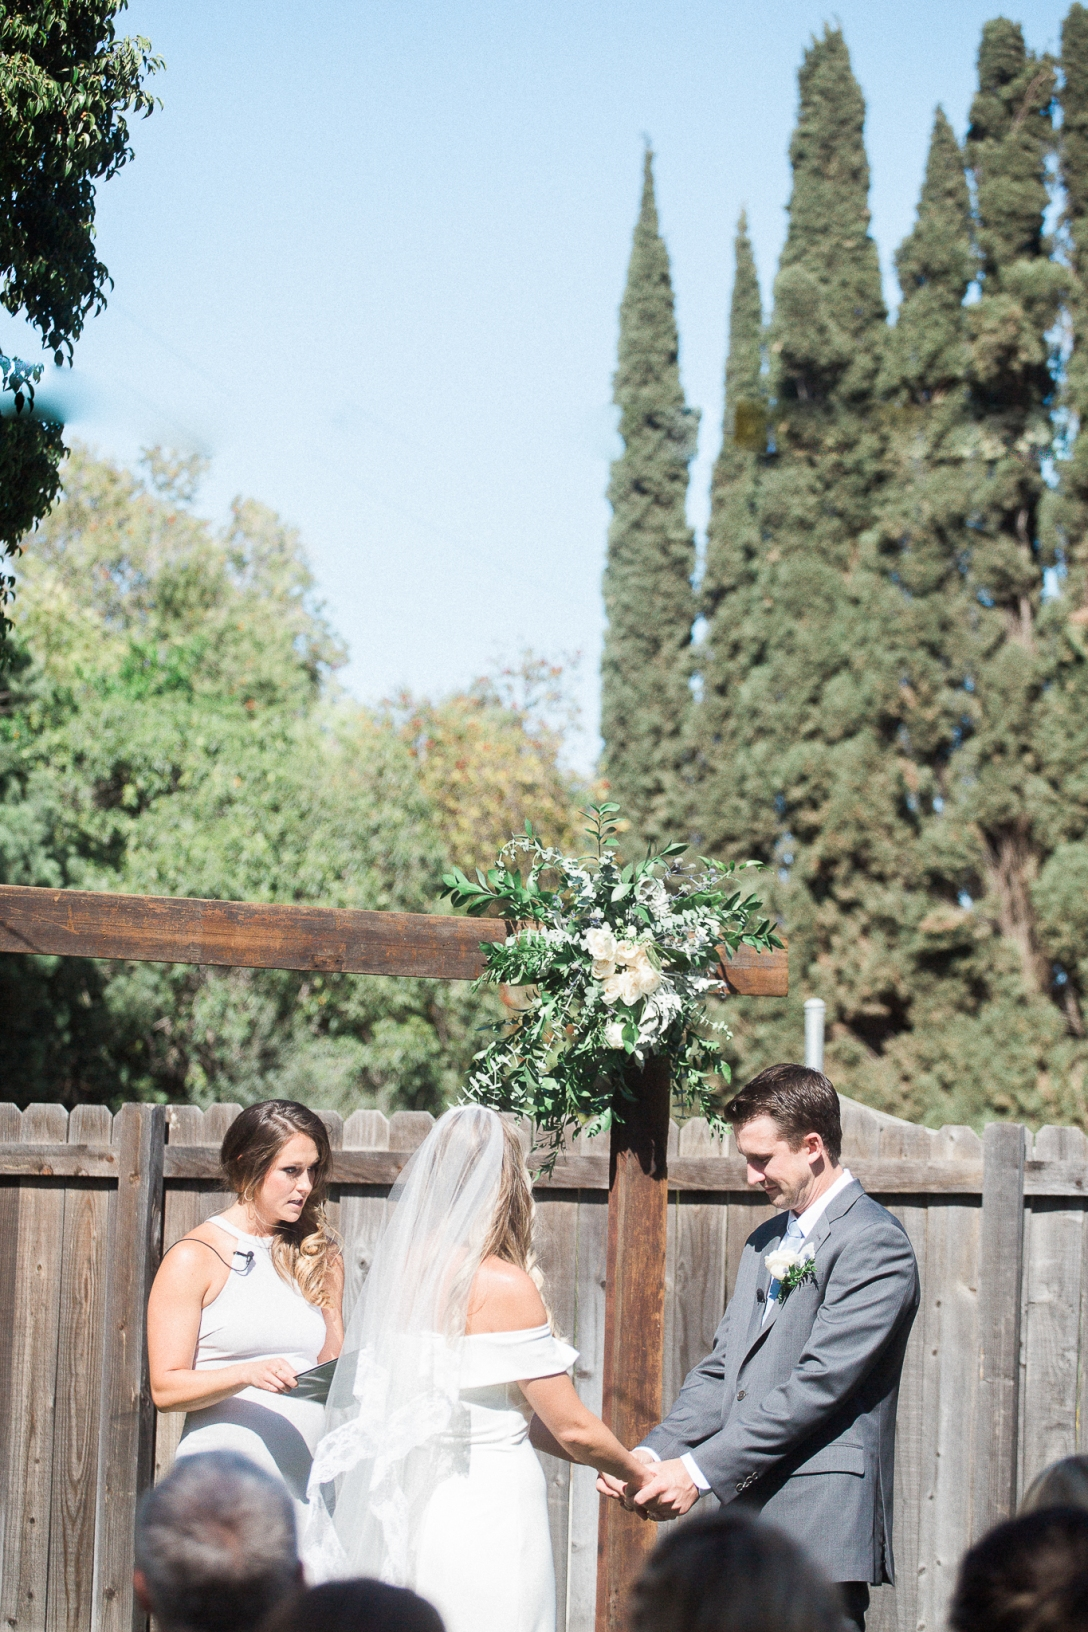 Katy-Steve-Wedding-Tustin-California-51